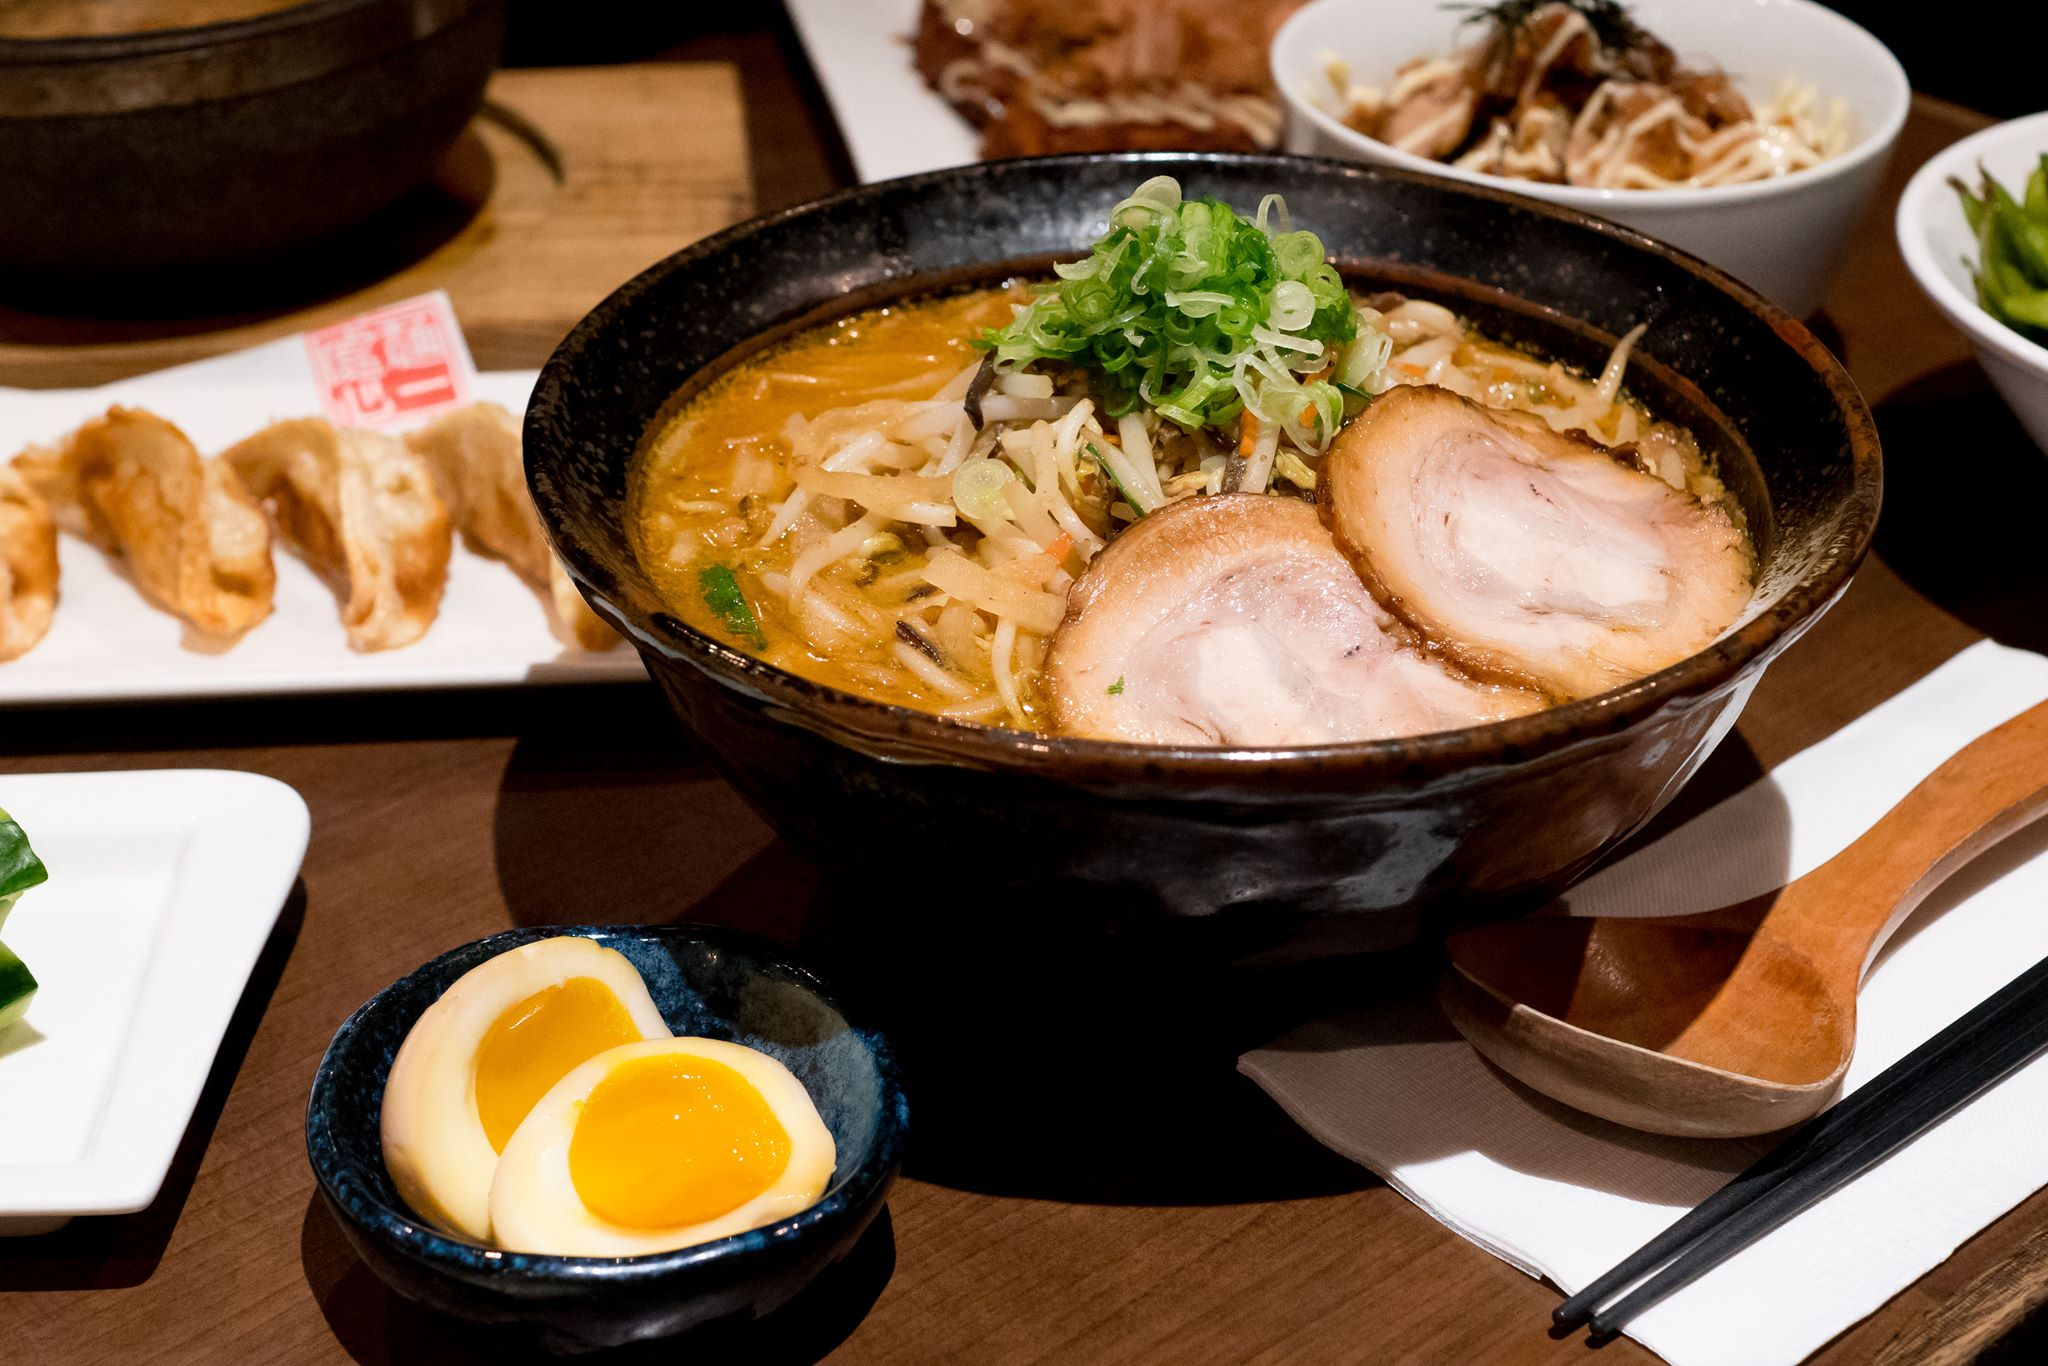 A bowl of ramen with soft-boiled egg halves in a bowl on the side.